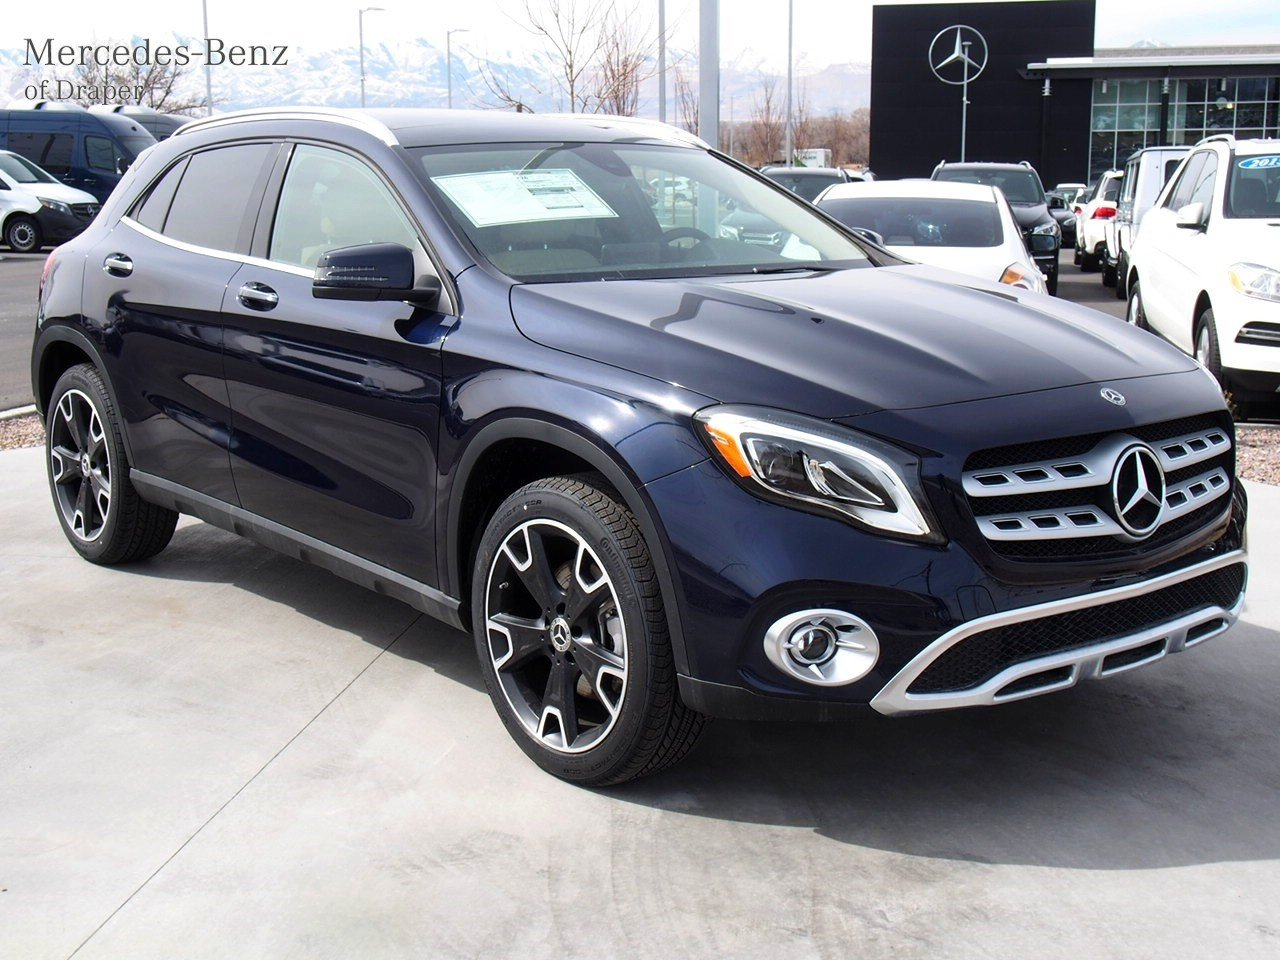 new 2018 mercedes benz gla gla 250 4matic suv in draper jj460223 mercedes benz of draper. Black Bedroom Furniture Sets. Home Design Ideas